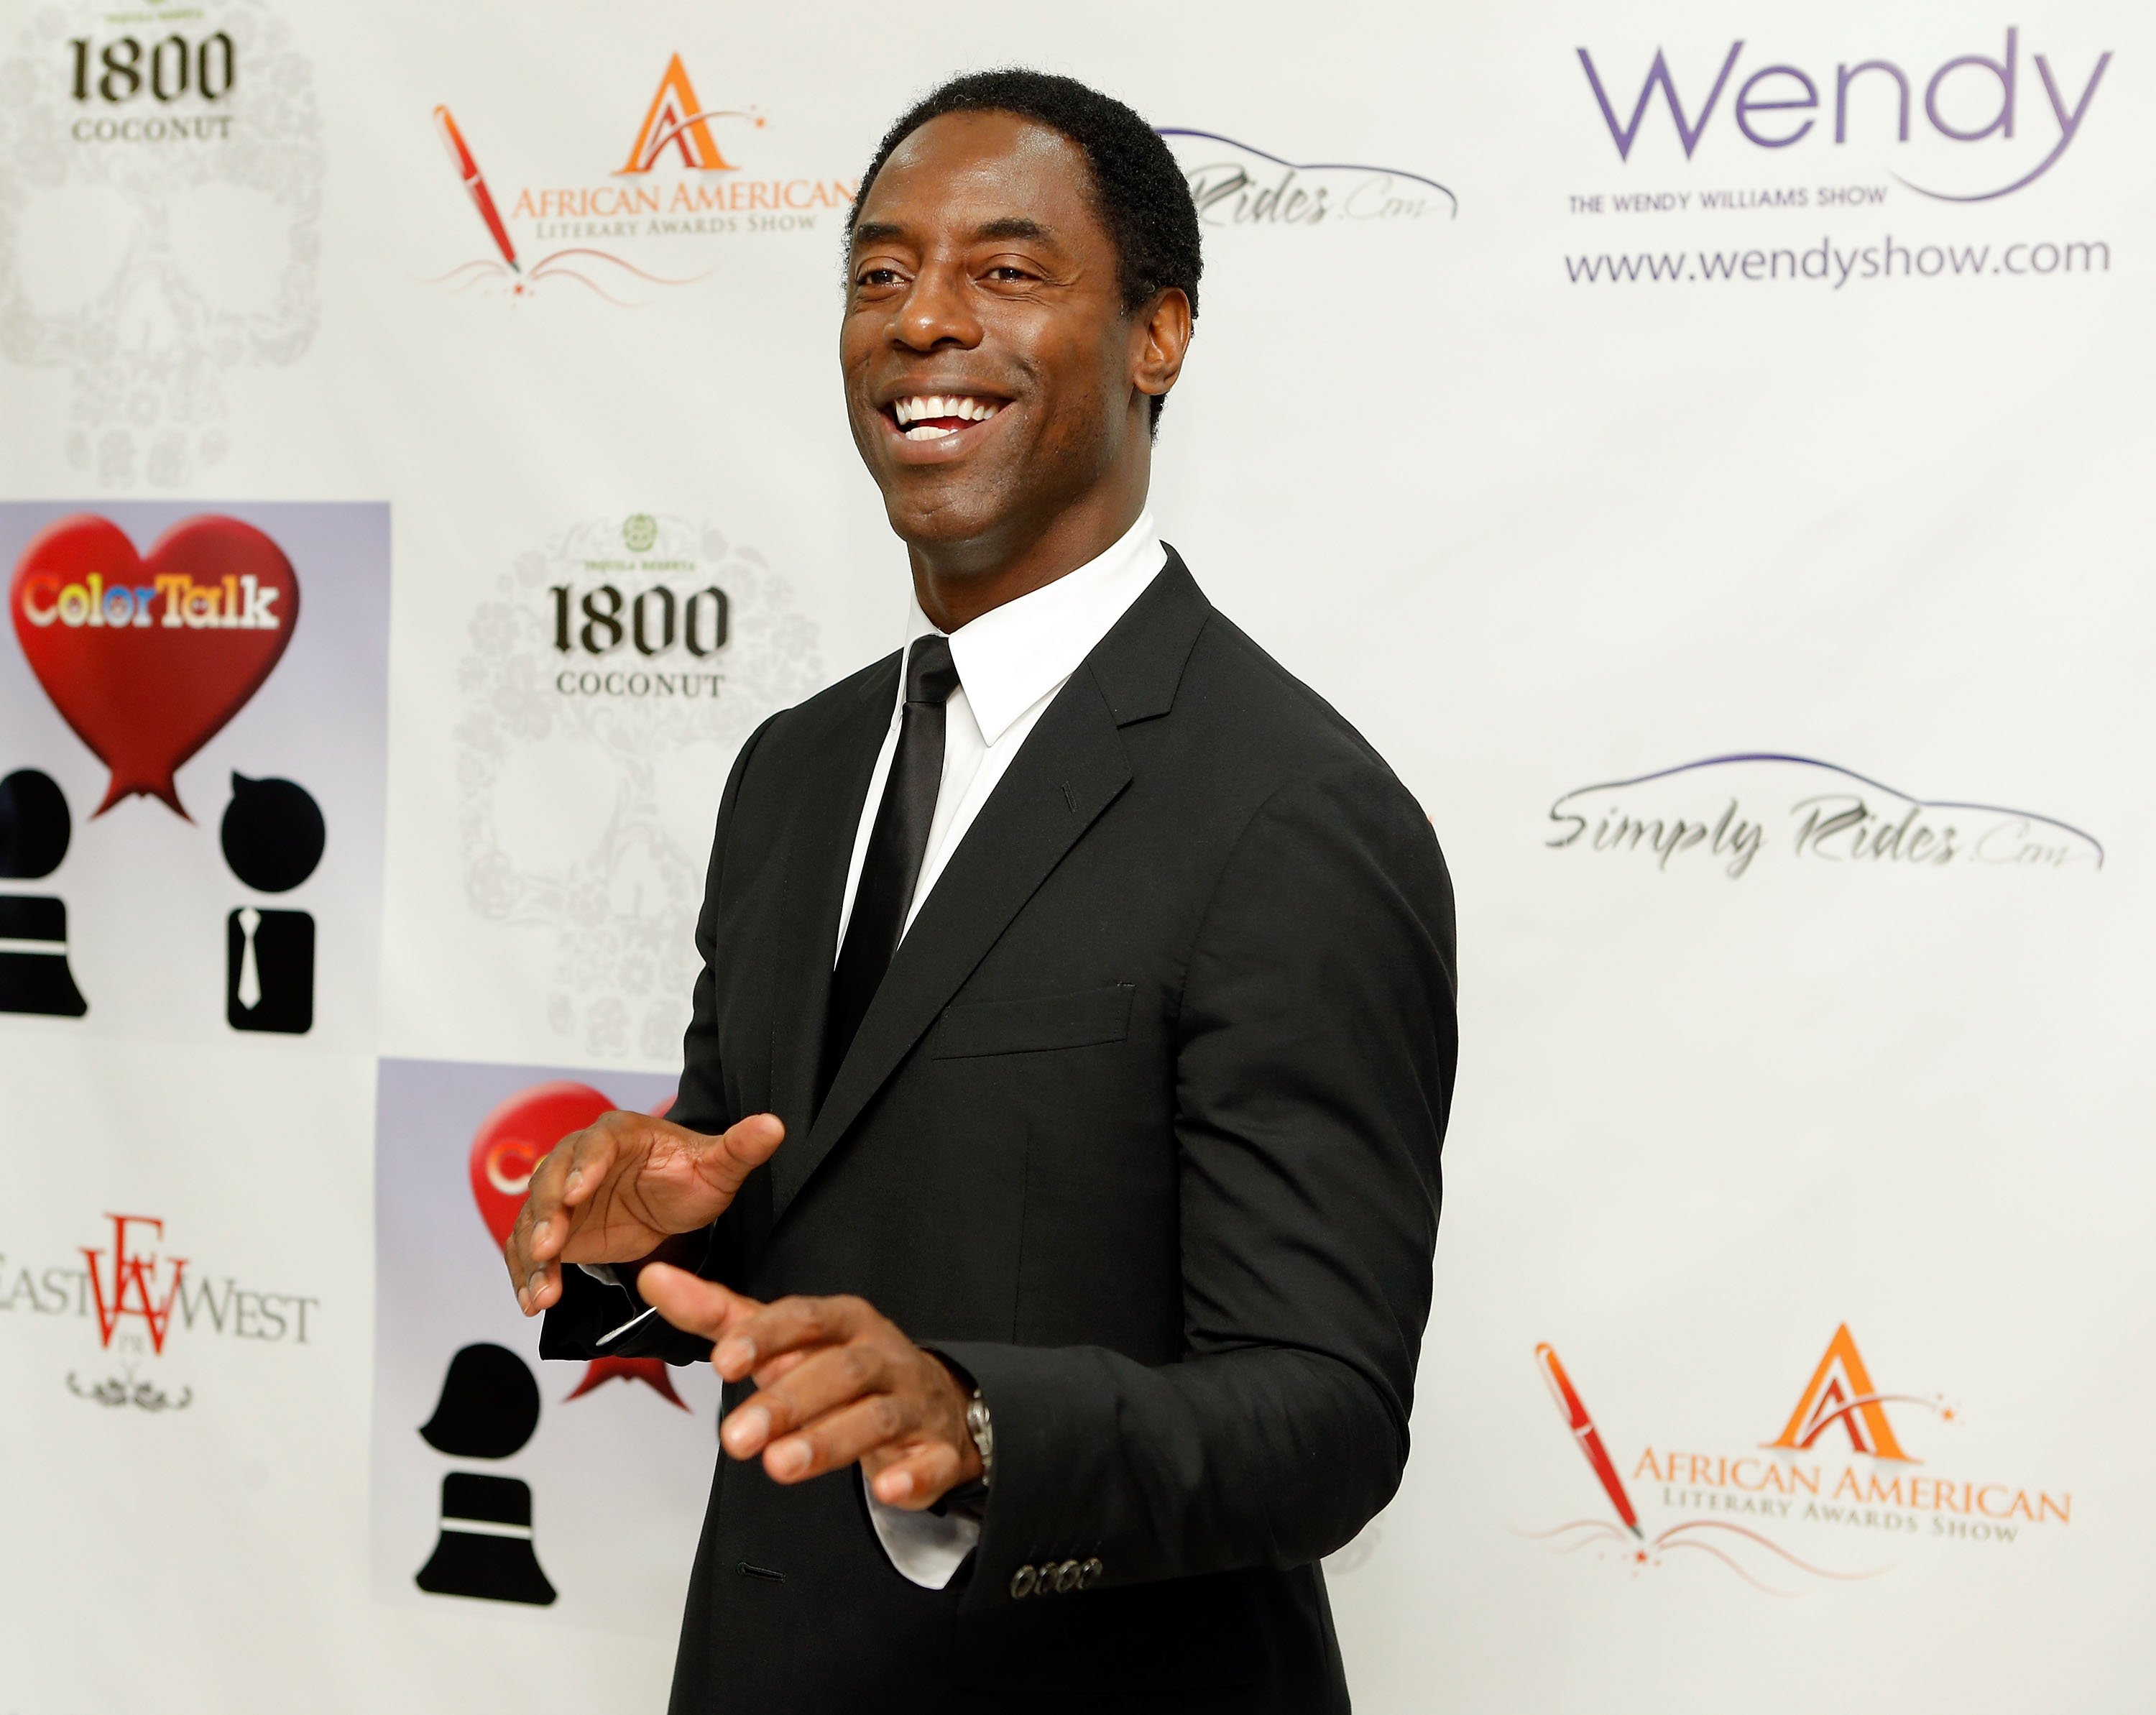 Isaiah Washington at the African American Literary Awards in New York in September 2012. | Photo: Getty Images